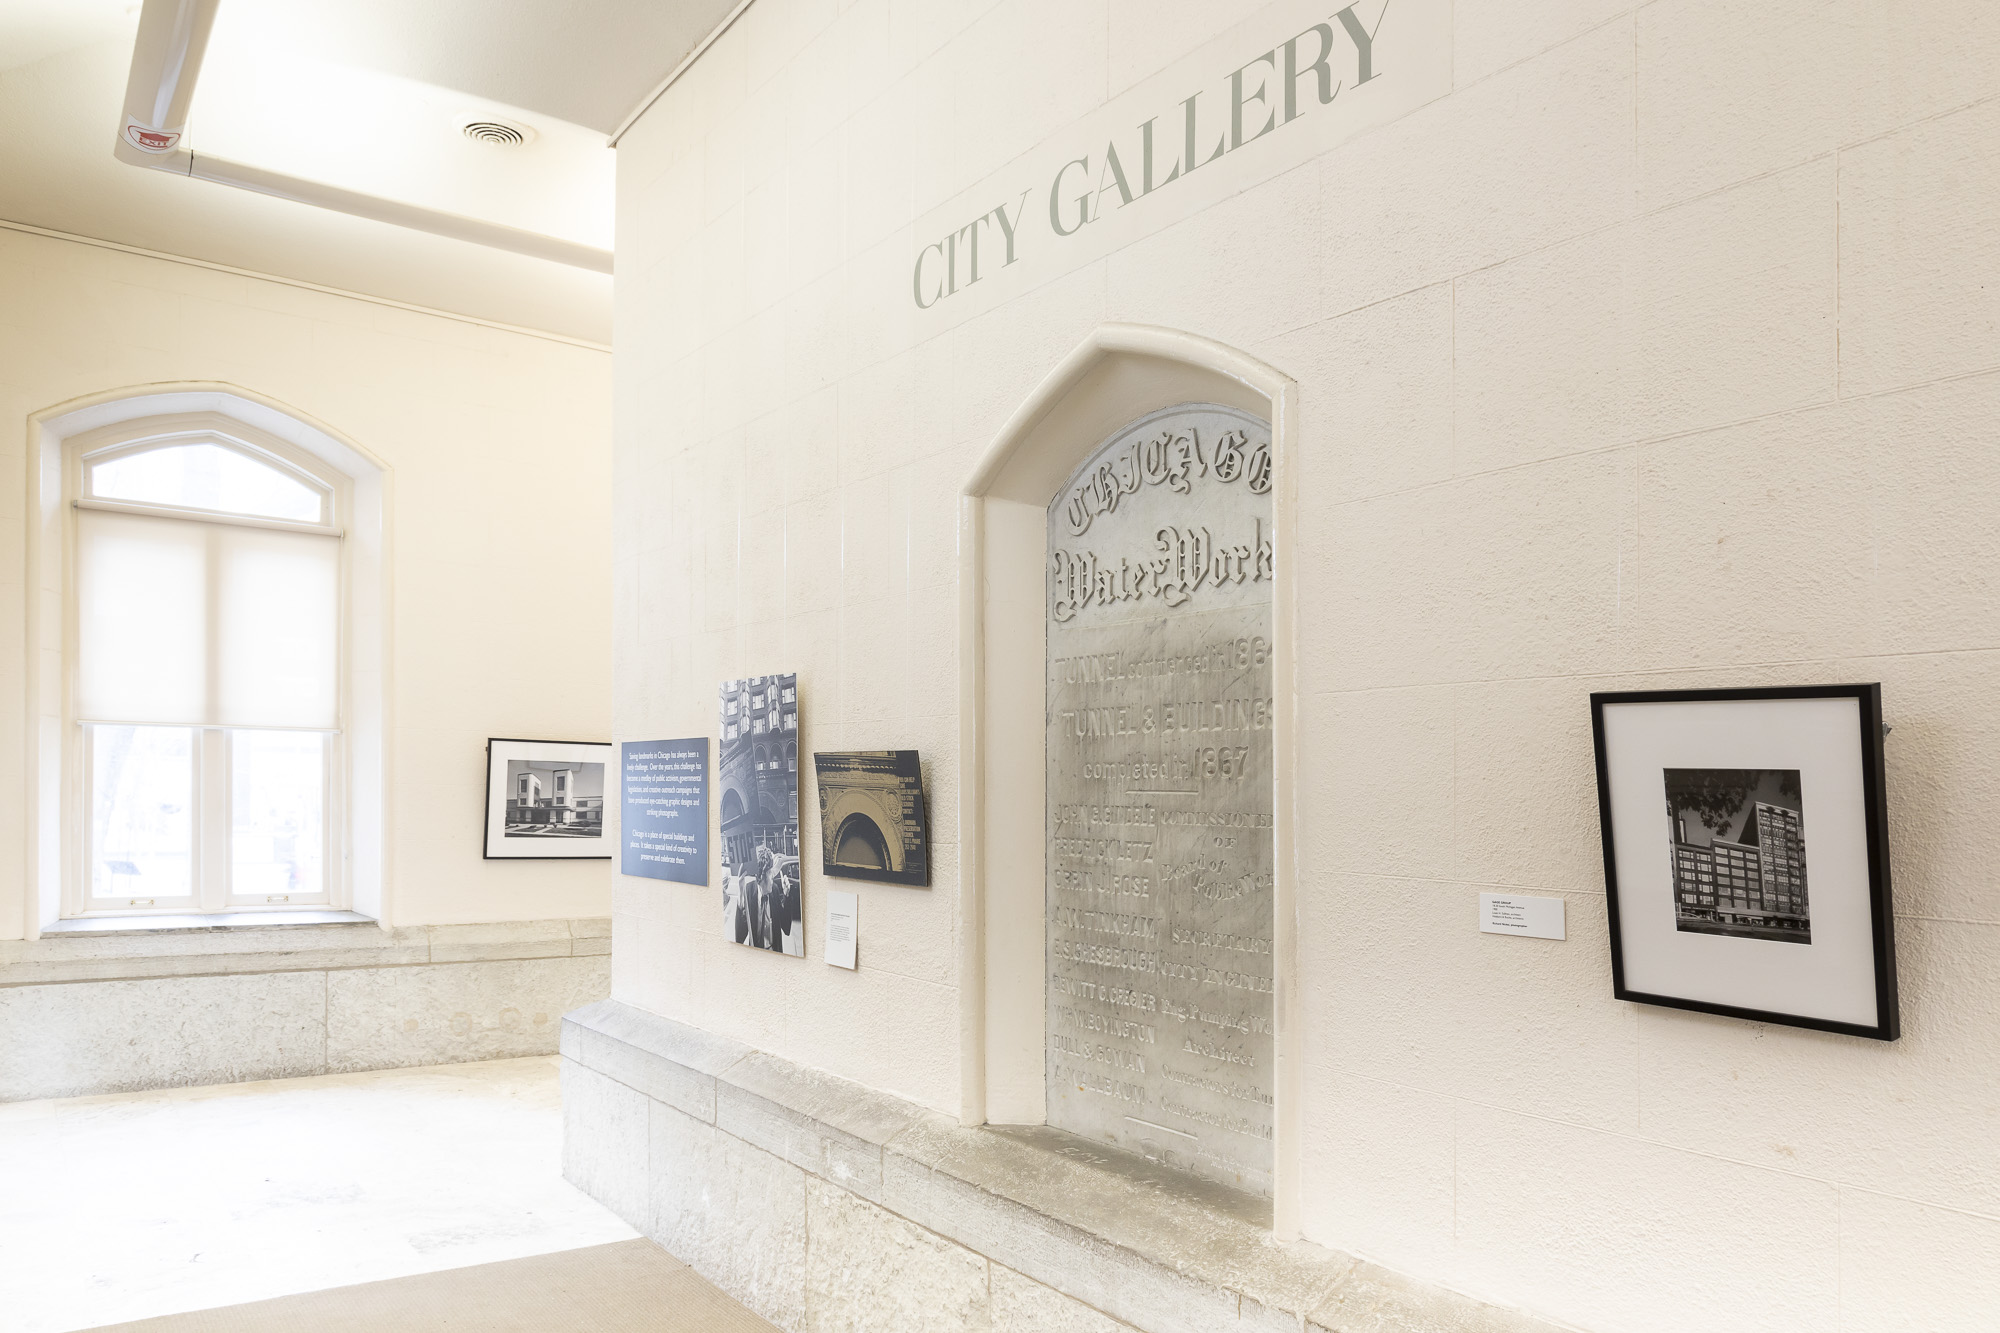 City Gallery in the Historic Water Tower